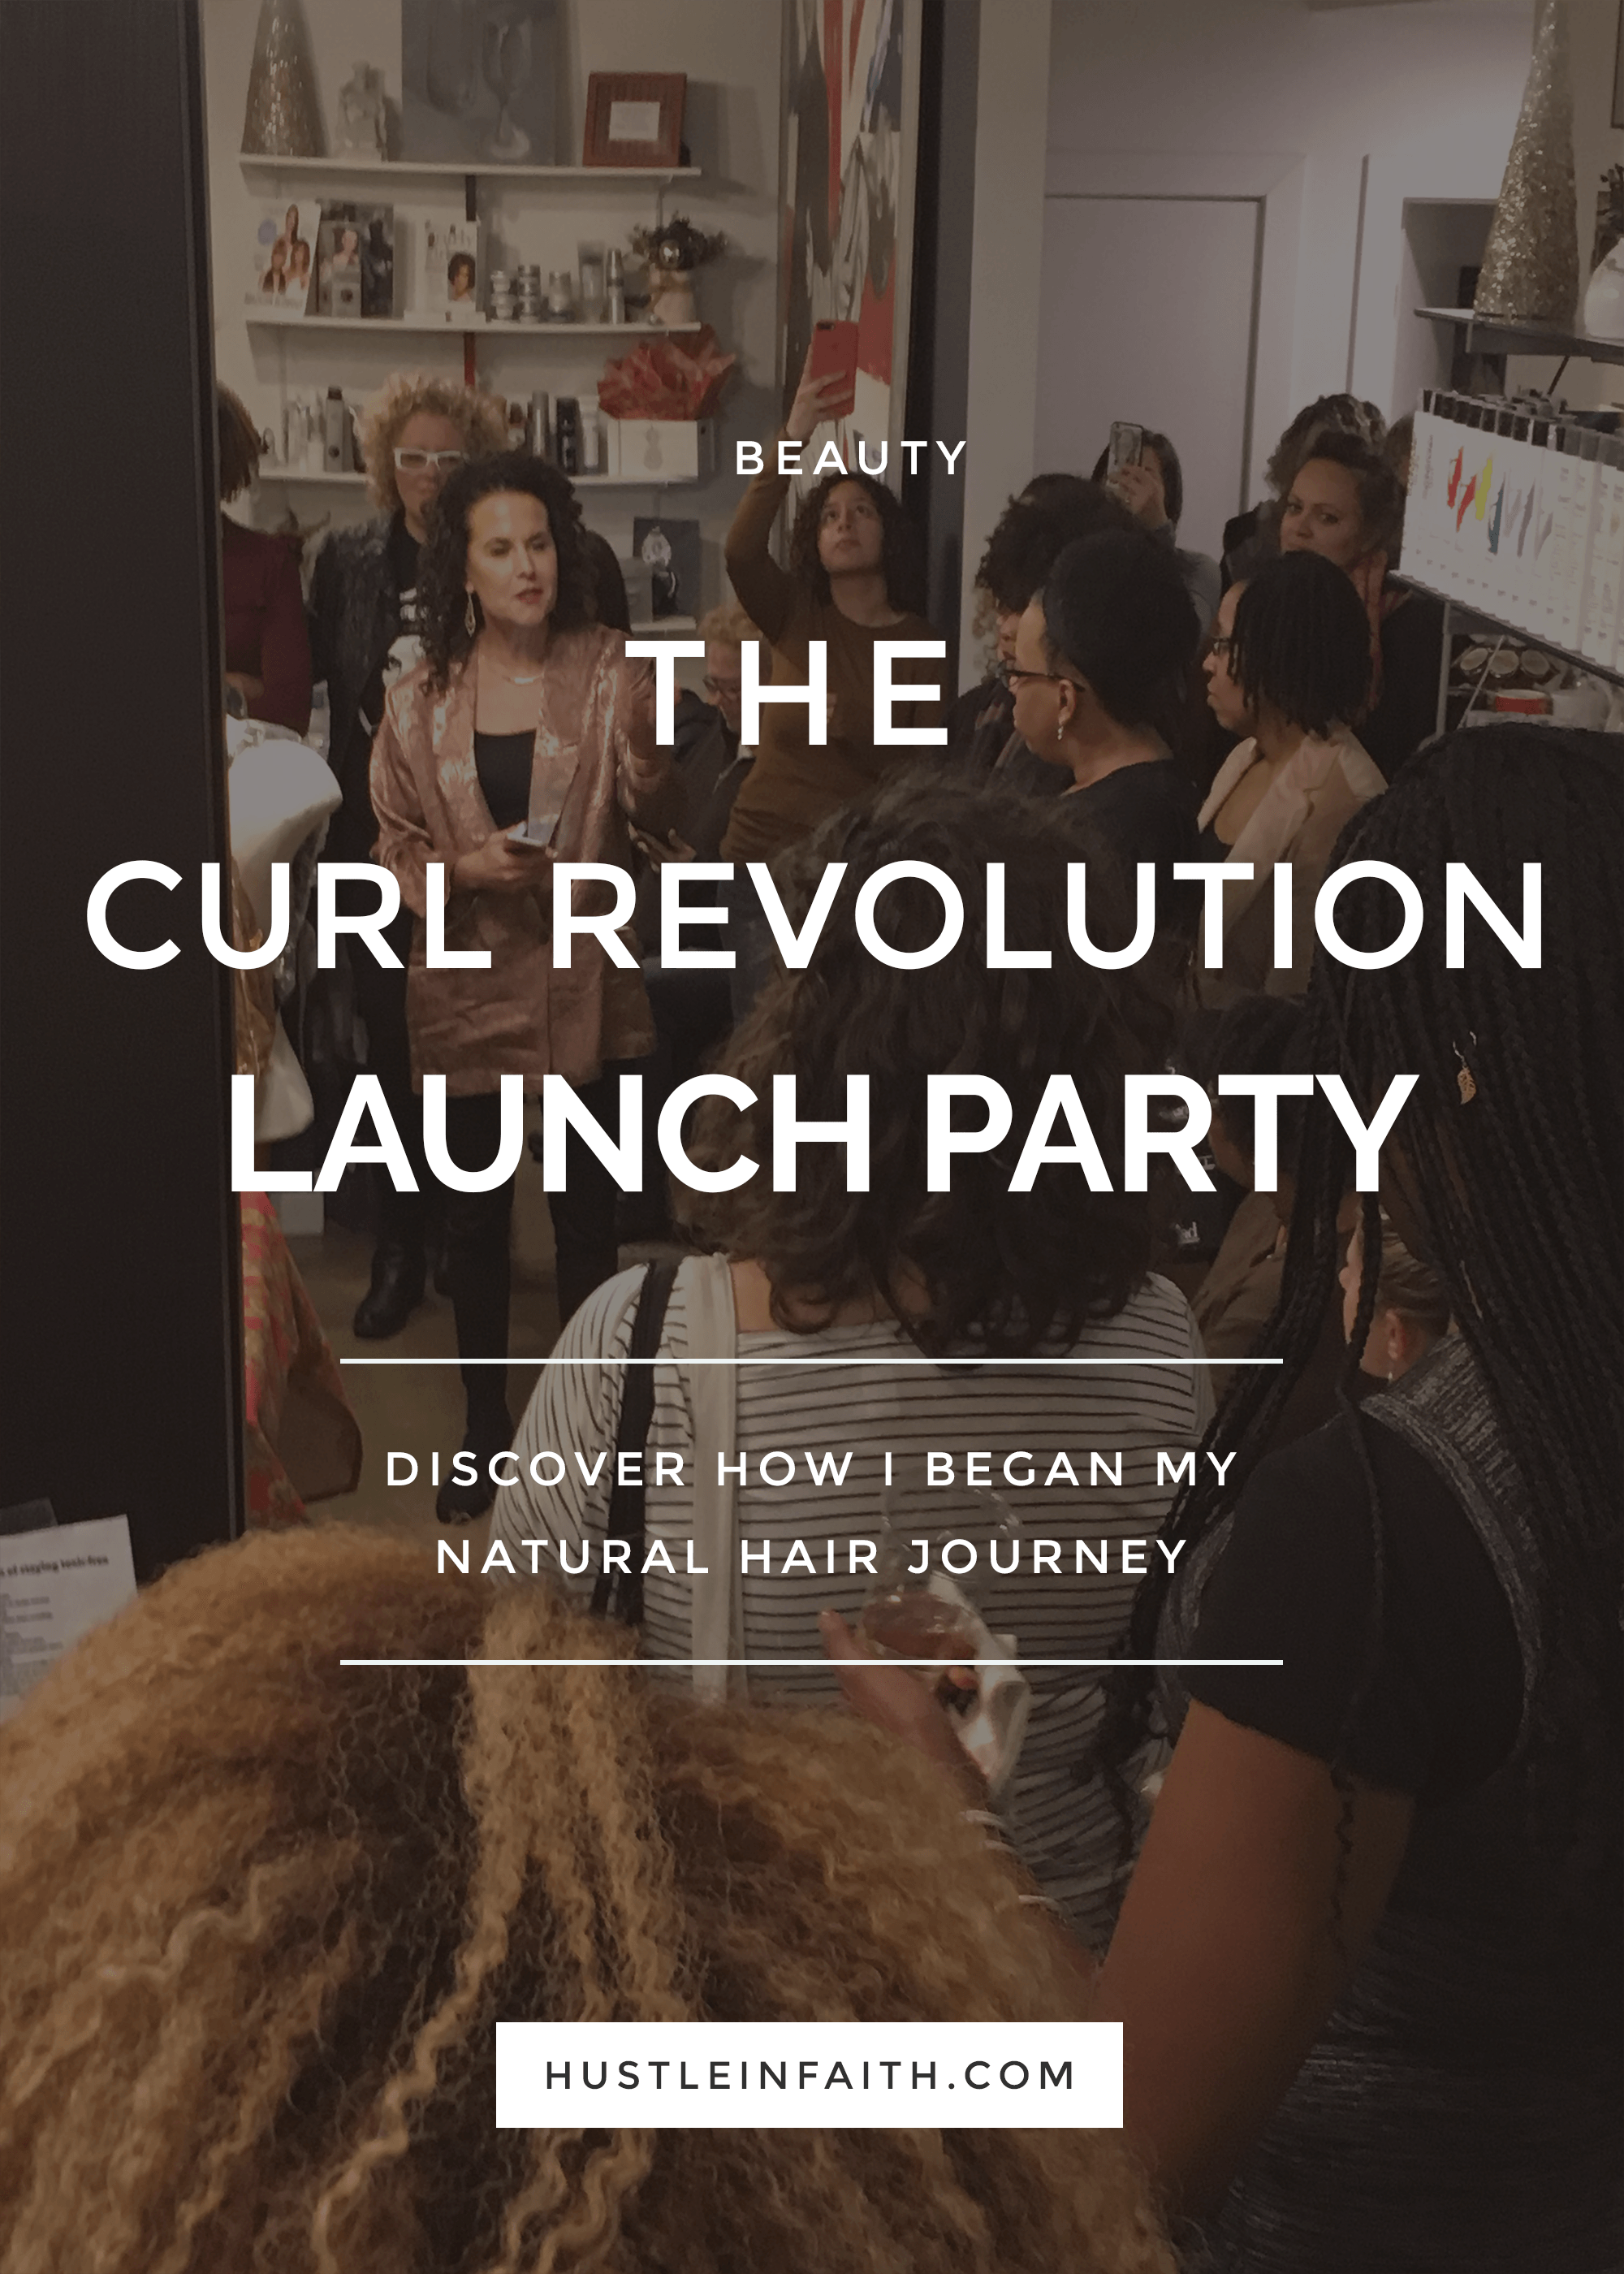 The Curl Revolution Launch Party